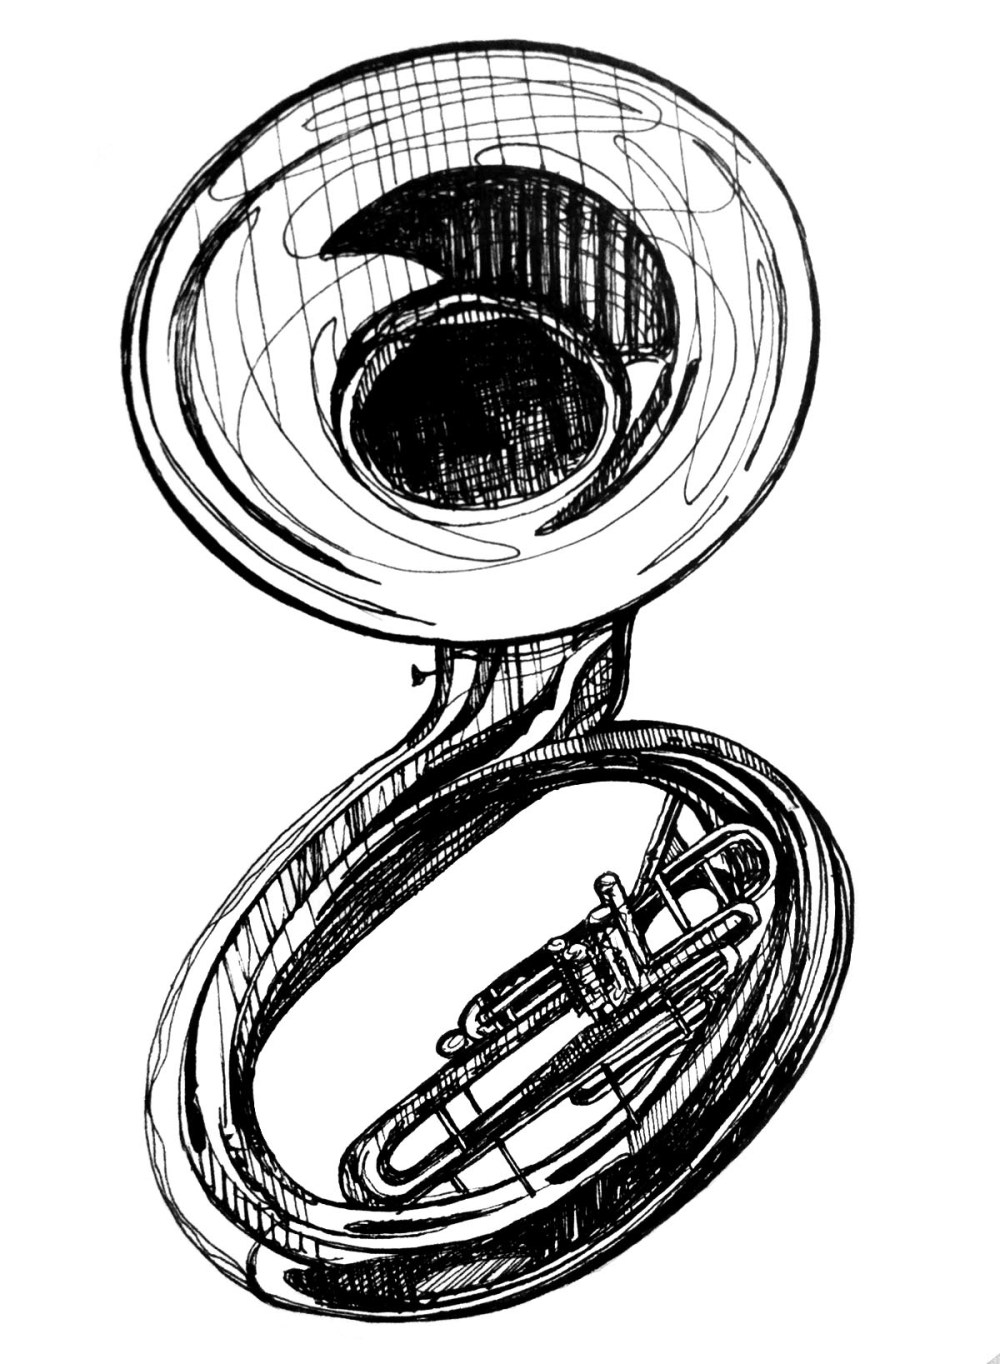 medium resolution of sousaphone cliparts 266024 license personal use